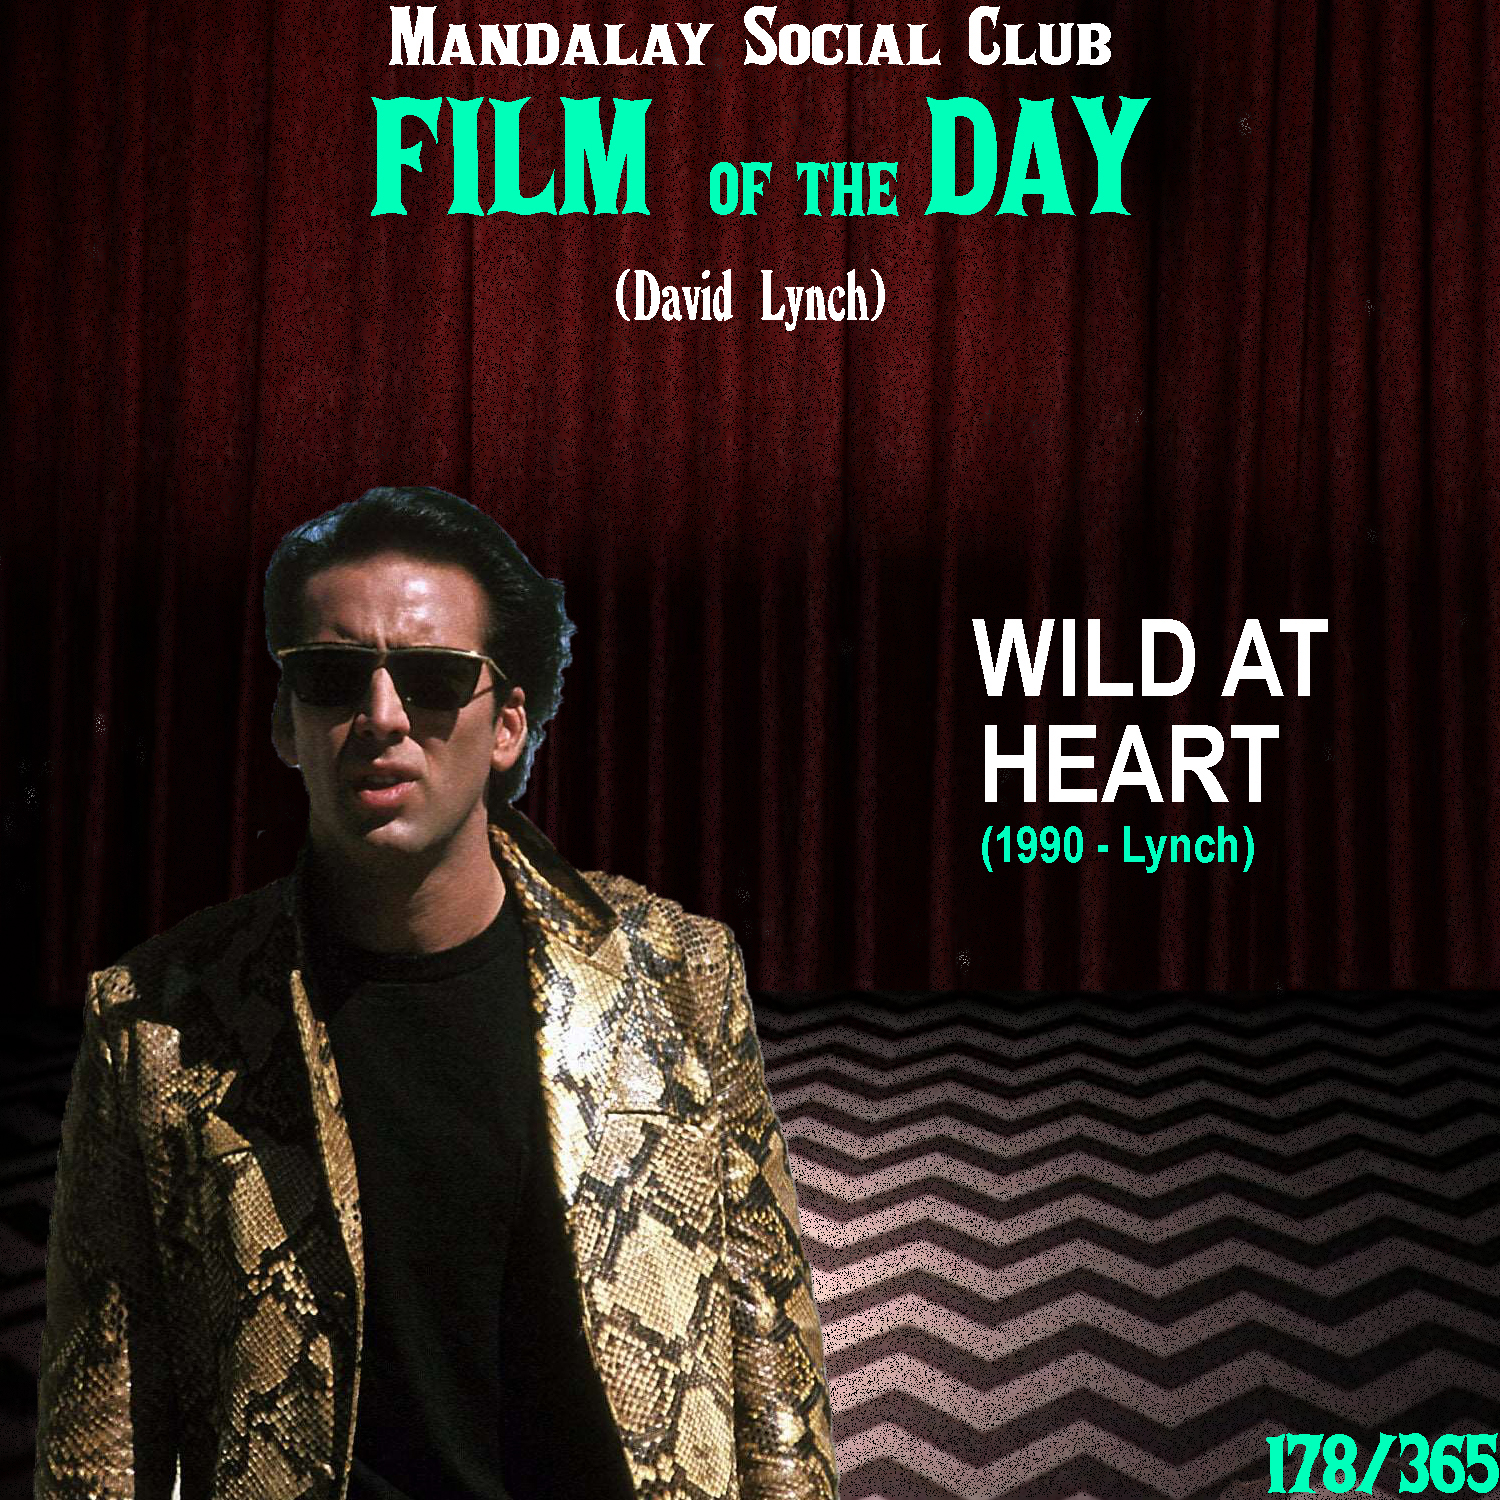 WILD AT HEART     (dir. David Lynch)   After kicking off the 80s with two 'for-hire' films w/ the critically acclaimed  Elephant Man  and not so acclaimed  Dune , David came into his own as a filmmaker with his 1986 cult classic  Blue Velvet . His follow-up,  Wild at Heart , is arguably even more zany and further staples David's presence as the new king of American Surrealism.   Wild at Heart  is an adaptation of the novel by the same name by Barry Gifford. It follows a young, sexually charged couple named Sailor and Lula, played by Nic Cage and Laura Dern. Lula's mom doesn't like Sailor and does everything gin her power to keep her daughter from seeing Sailor, including homicidal attempts upon the young man's life. Once he gets out of prison, him and Lula skip town and head towards Texas. Unbeknownst to them however is a hitman out to track down the couple and kill Sailor. The two find refuge in the strange town of Big Tuna, Texas where Sailor gets in more trouble when he meets the bizarre criminal Bobby Peru.  Thanks to Blue Velvet, David had cemented his own personal style and he was able to include that style in this adaptation of  Wild at Heart .  Wild at Heart  is a non-stop thrill ride that indulges in pure surreal expressionism, with countless allusions to  The Wizard of Oz . The characters of the film, which includes a ton of cast members from  Twin Peaks , are among David's most idiosyncratic with every single last character in the film having enough substance within them that they could each easily be the star of their own individual picture. While the film is somewhat forgotten and pretty difficult to find, it's one of the most memorable in Lynch's cannon thanks to the eccentricity of his characters!    4/5     WATCH: Ok.ru (FREE)